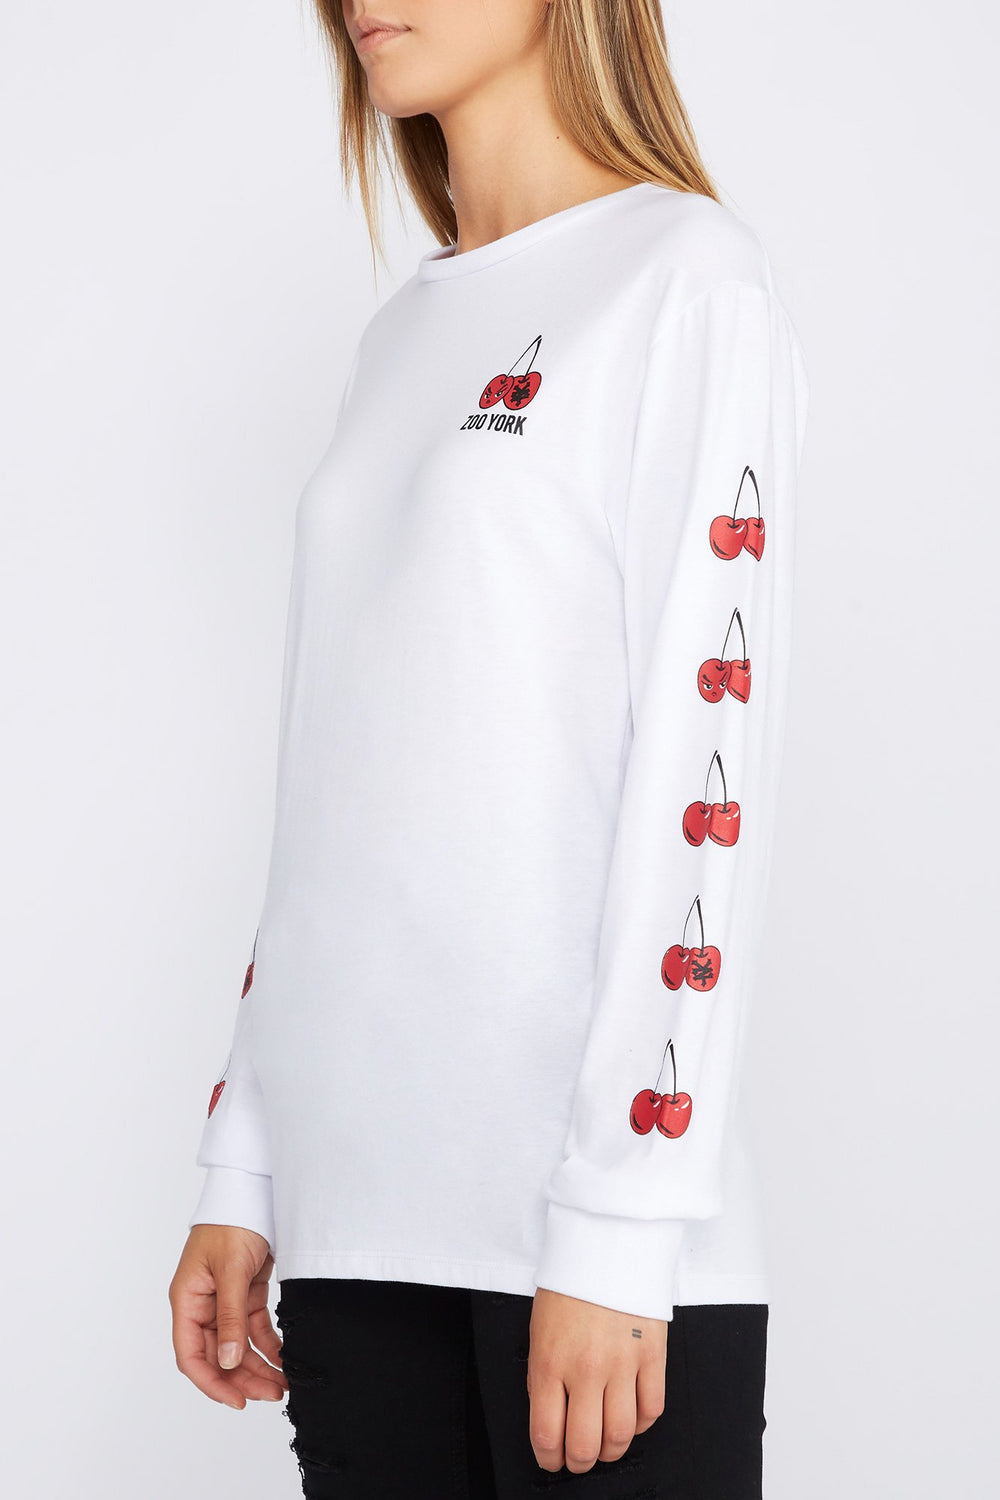 Zoo York Womens Cherry Logo Long Sleeve Shirt White